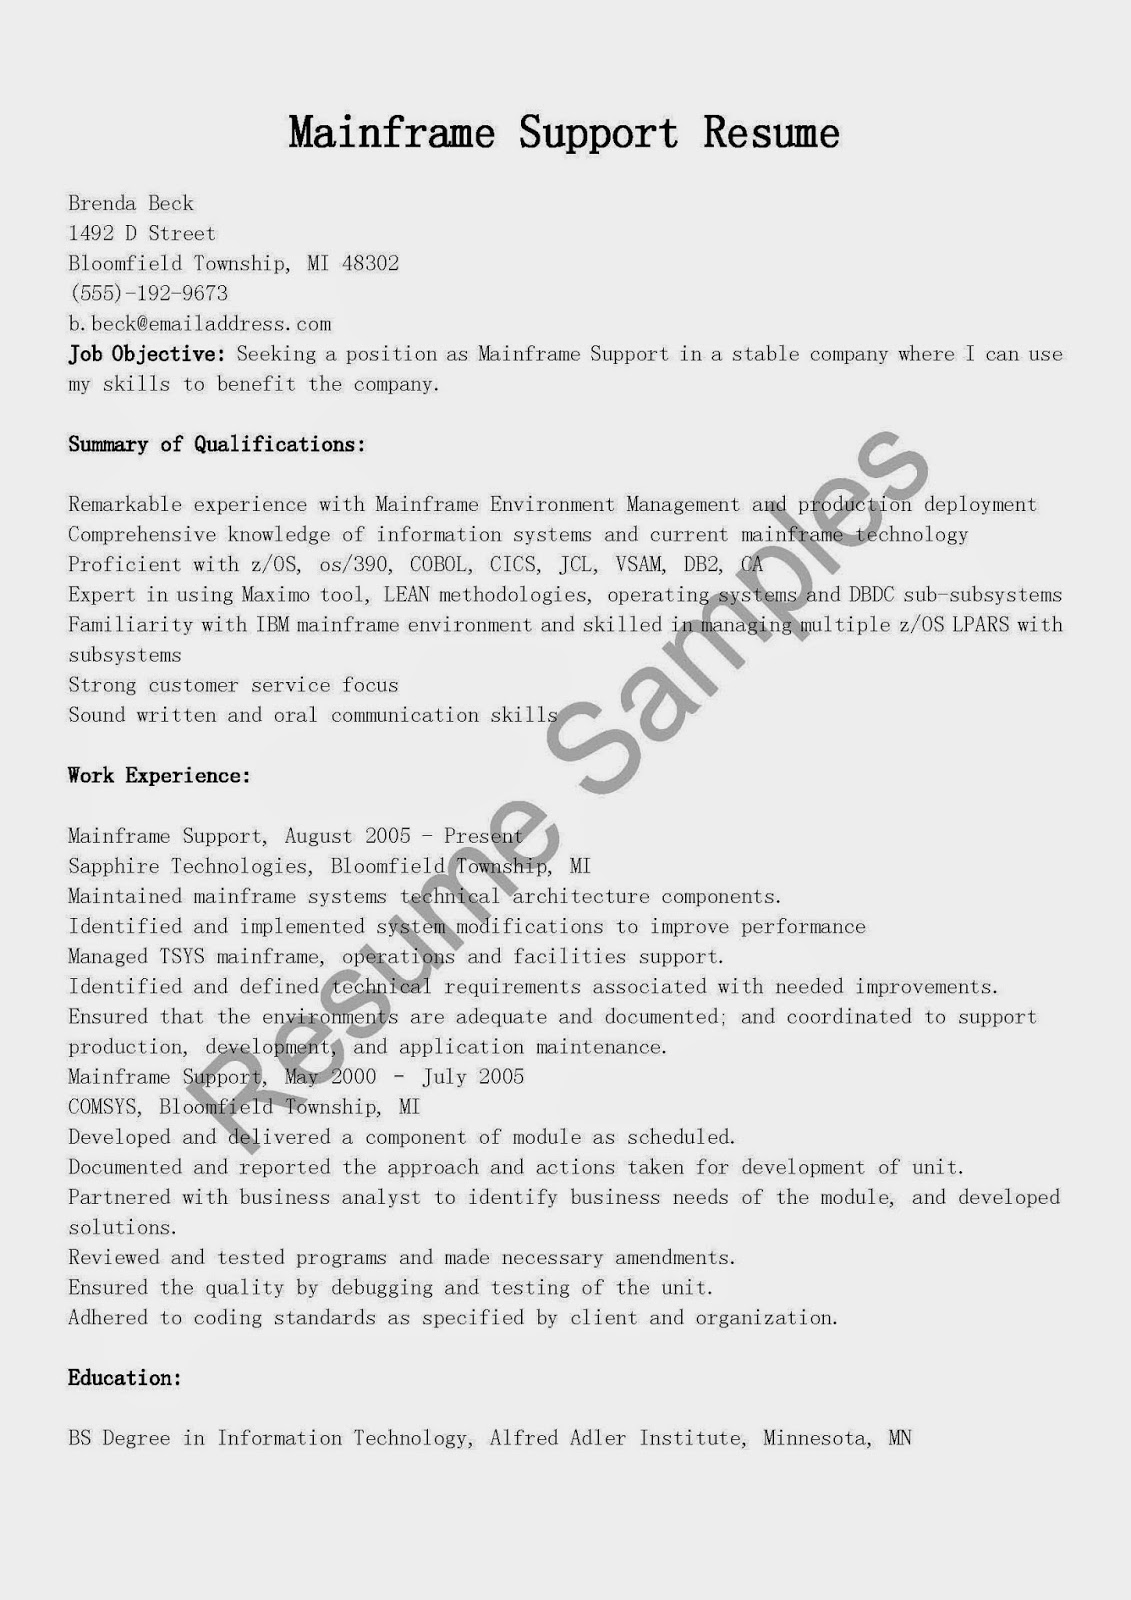 resume samples  mainframe support resume sample